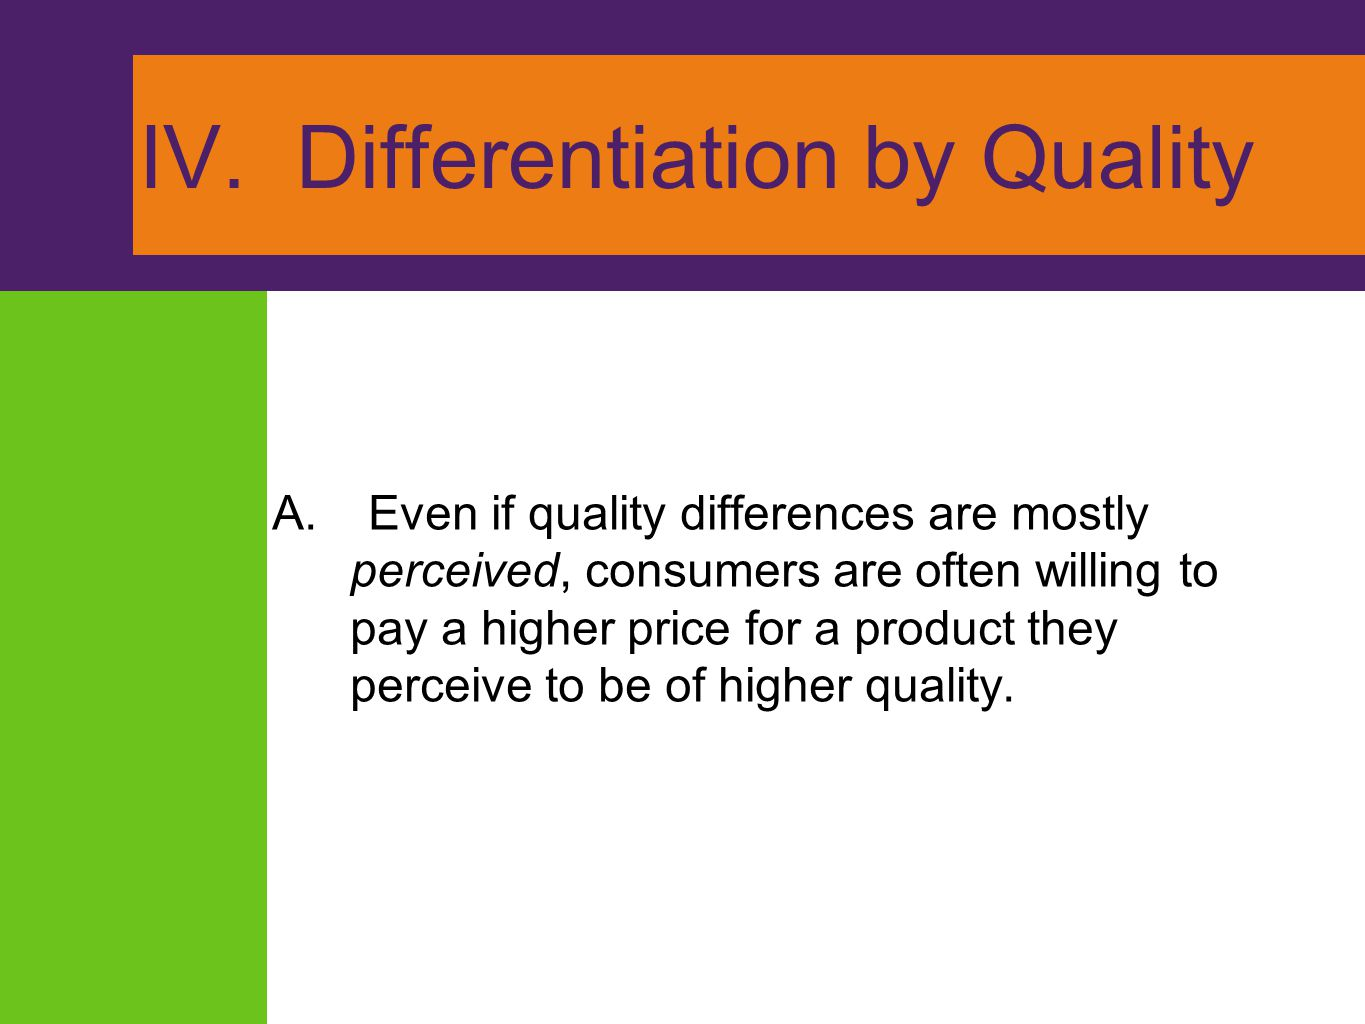 IV. Differentiation by Quality